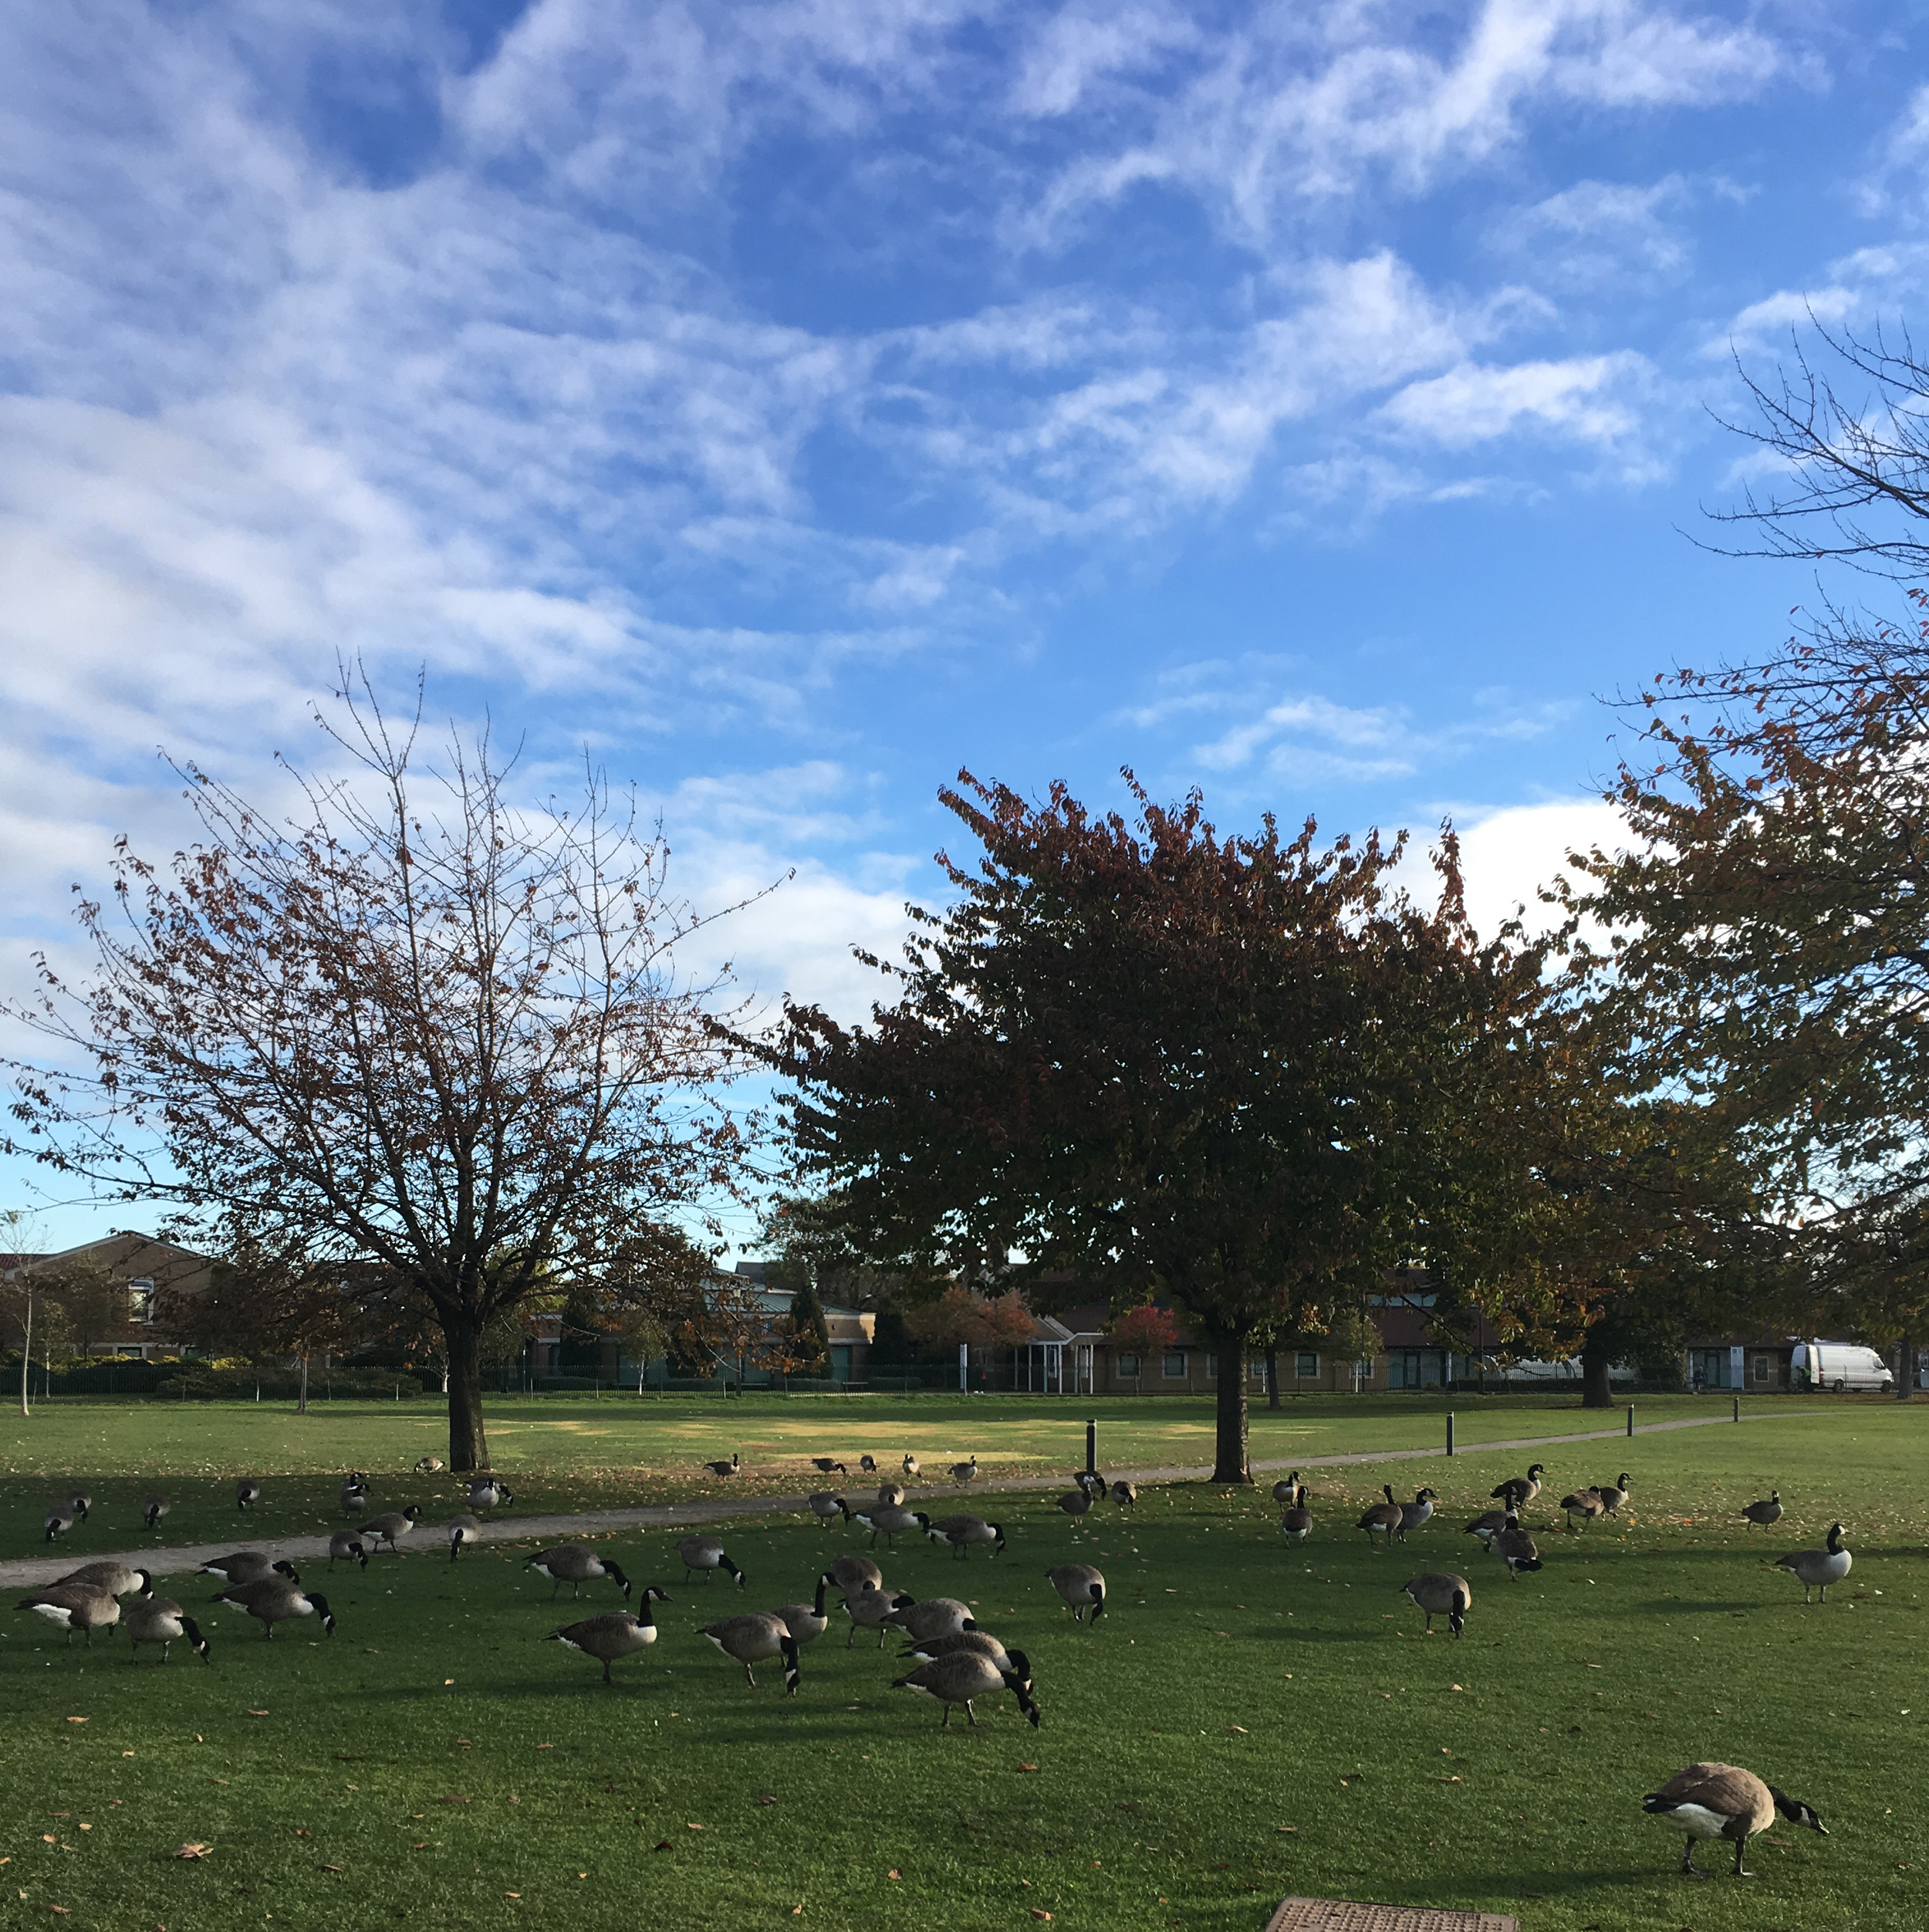 Migrating geese having a rest.